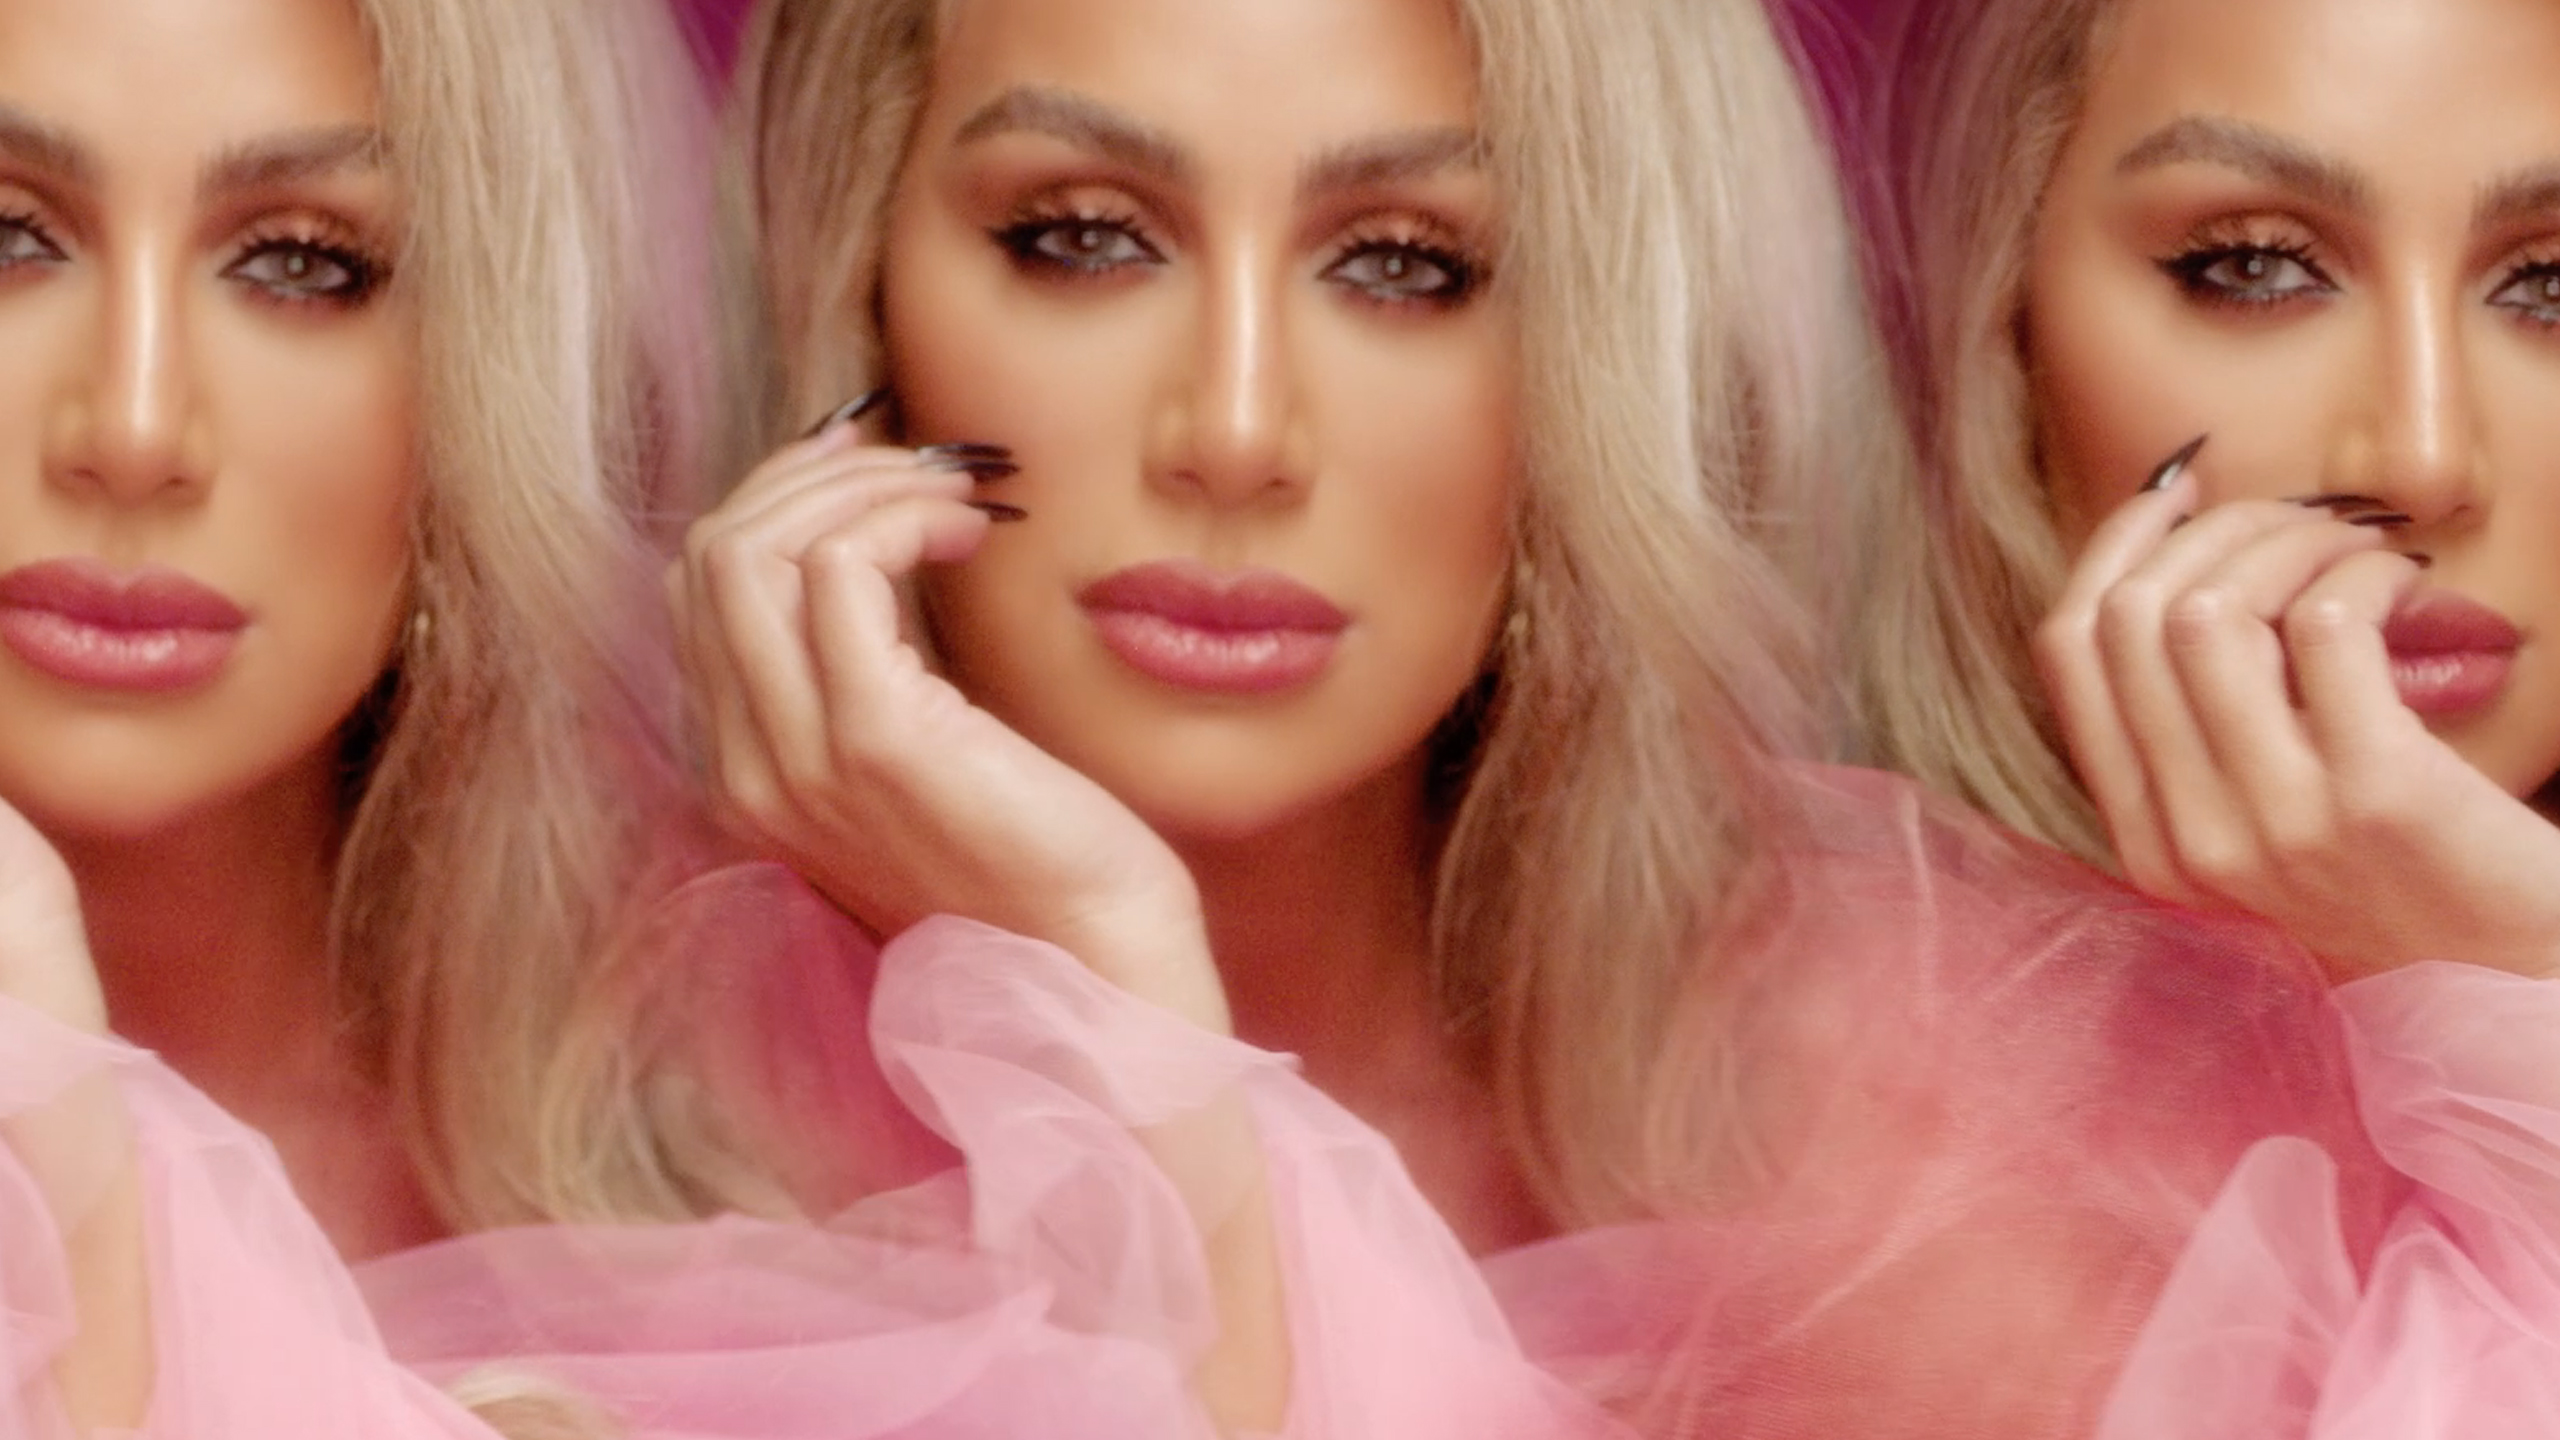 One Blink Can Speak A Thousand Words Amara lenses X Maya Diab 111